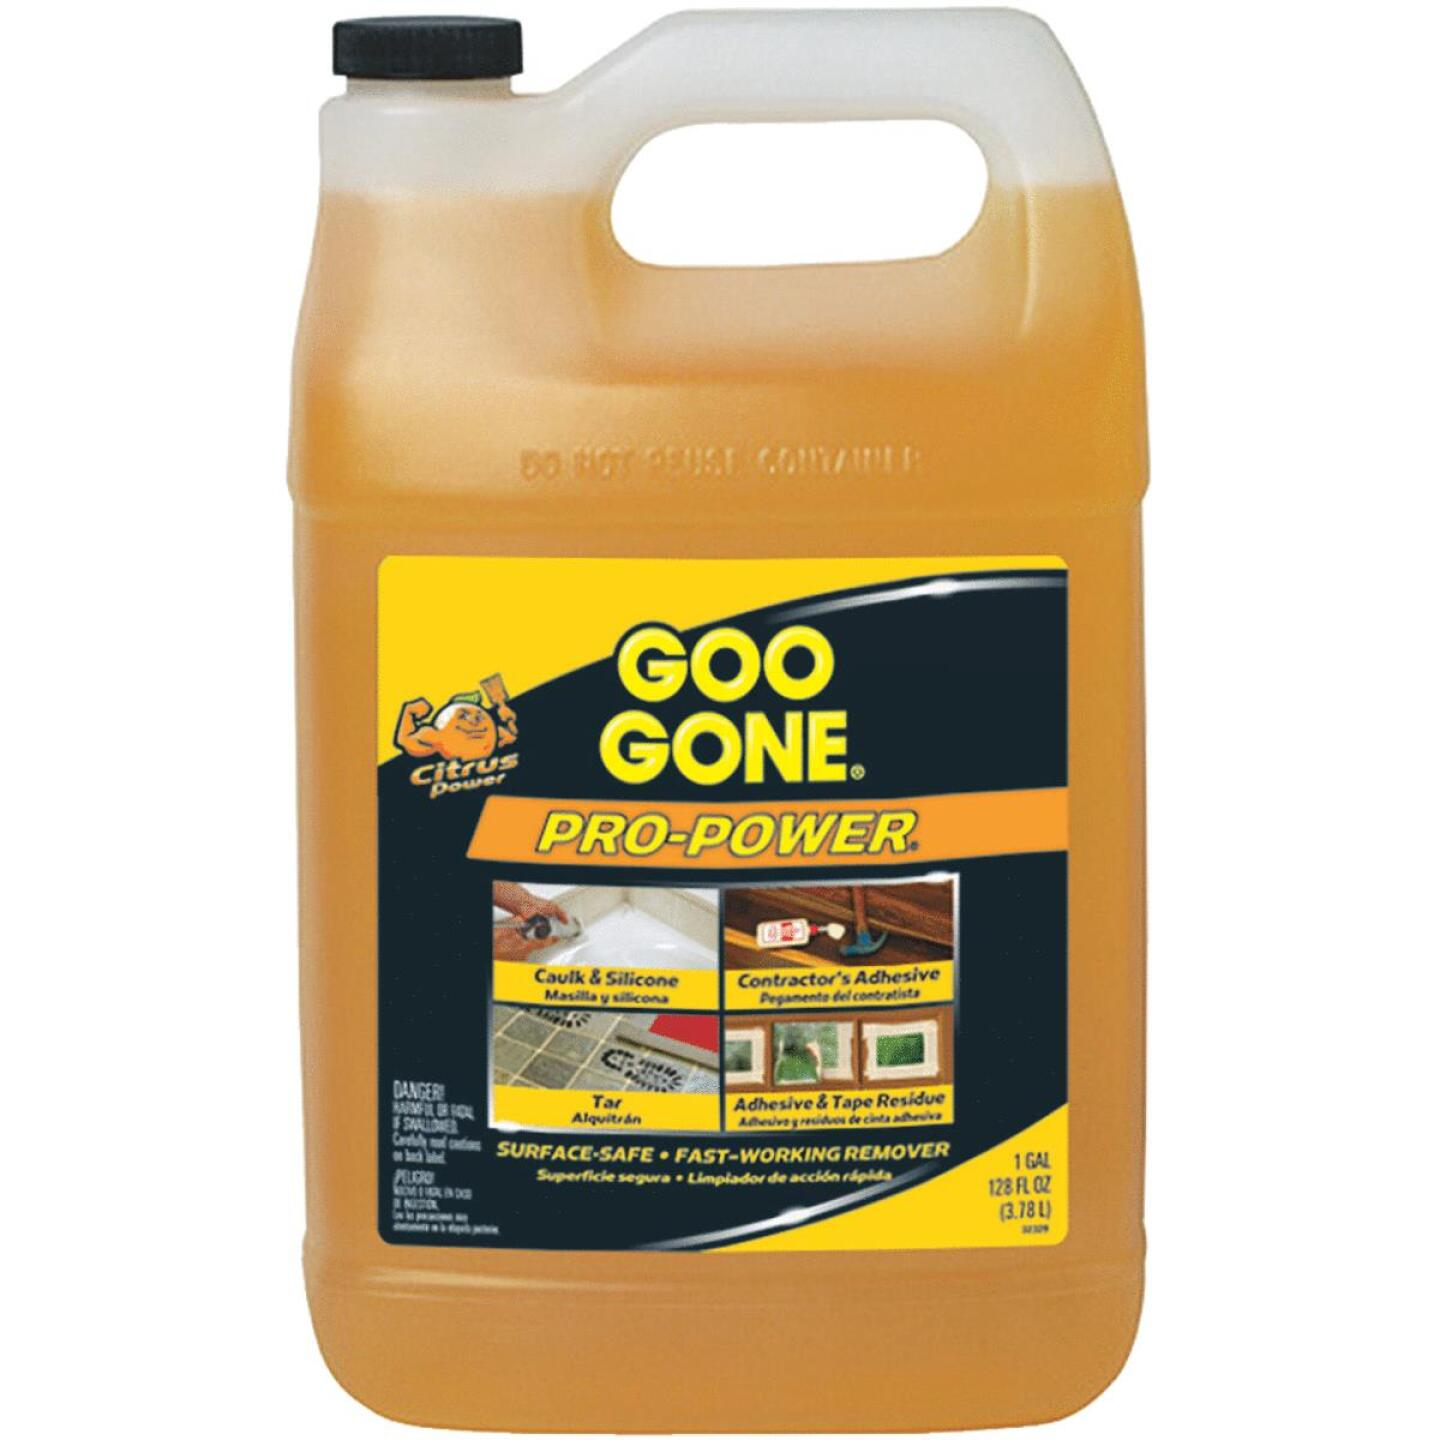 Goo Gone 1 Gal. Pro-Power Adhesive Remover Image 360